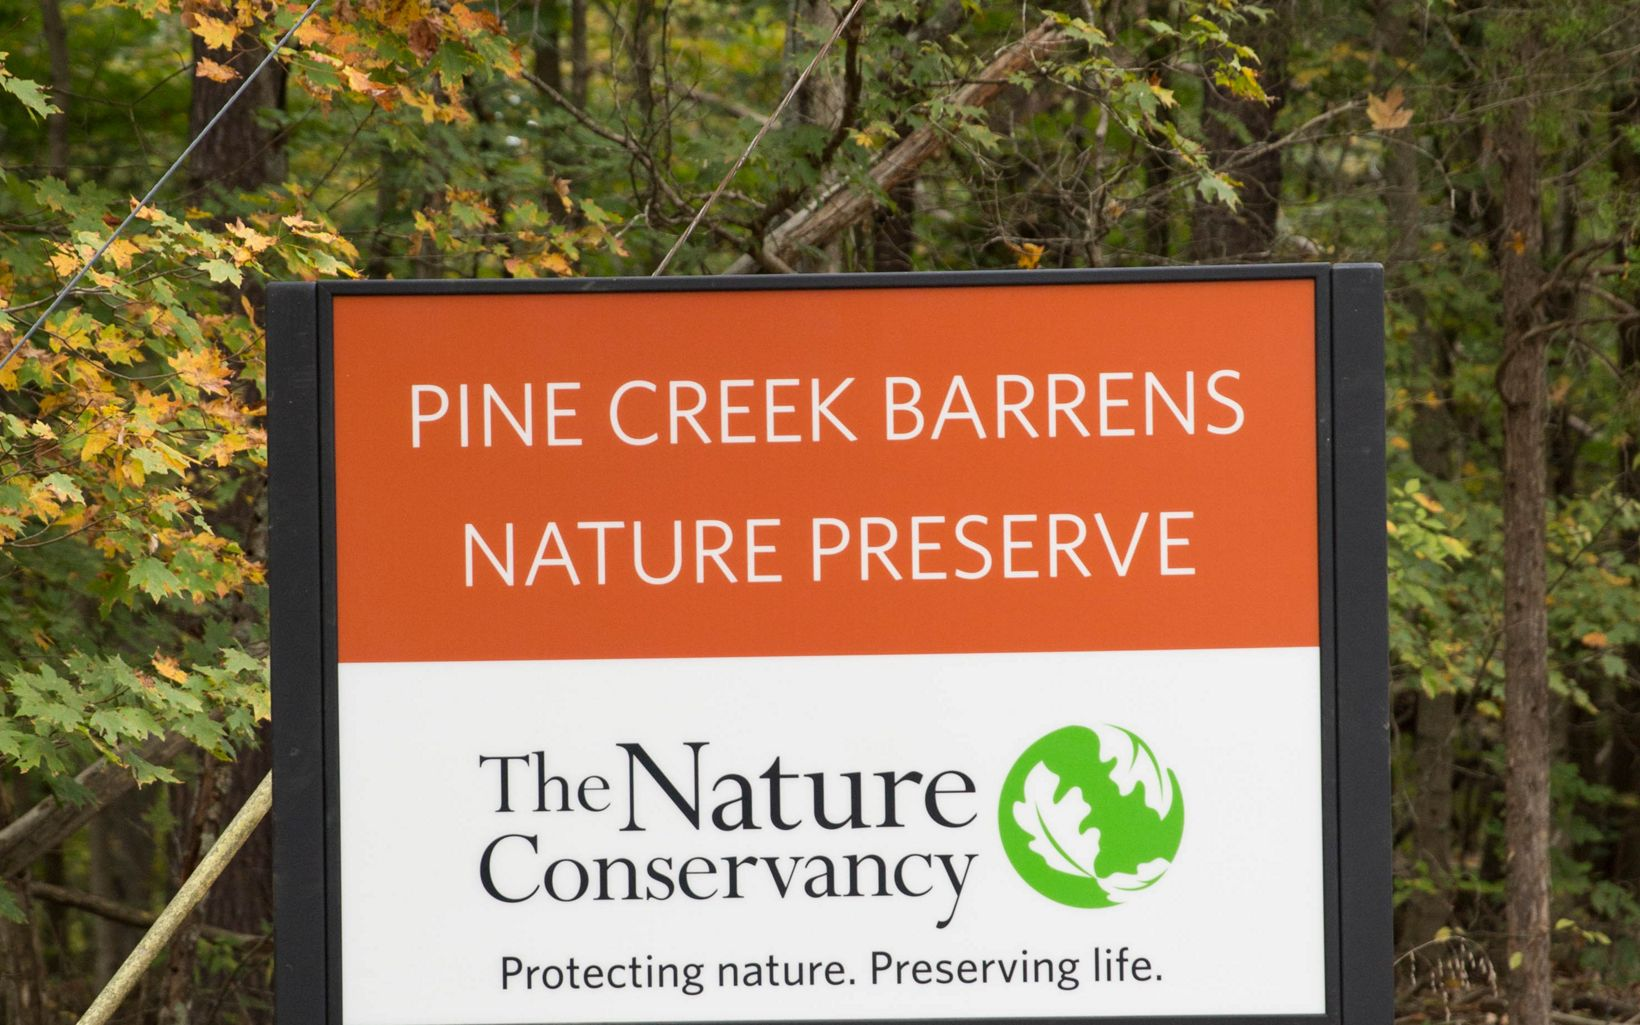 Sign for Pine Creek Barrens Nature Preserve